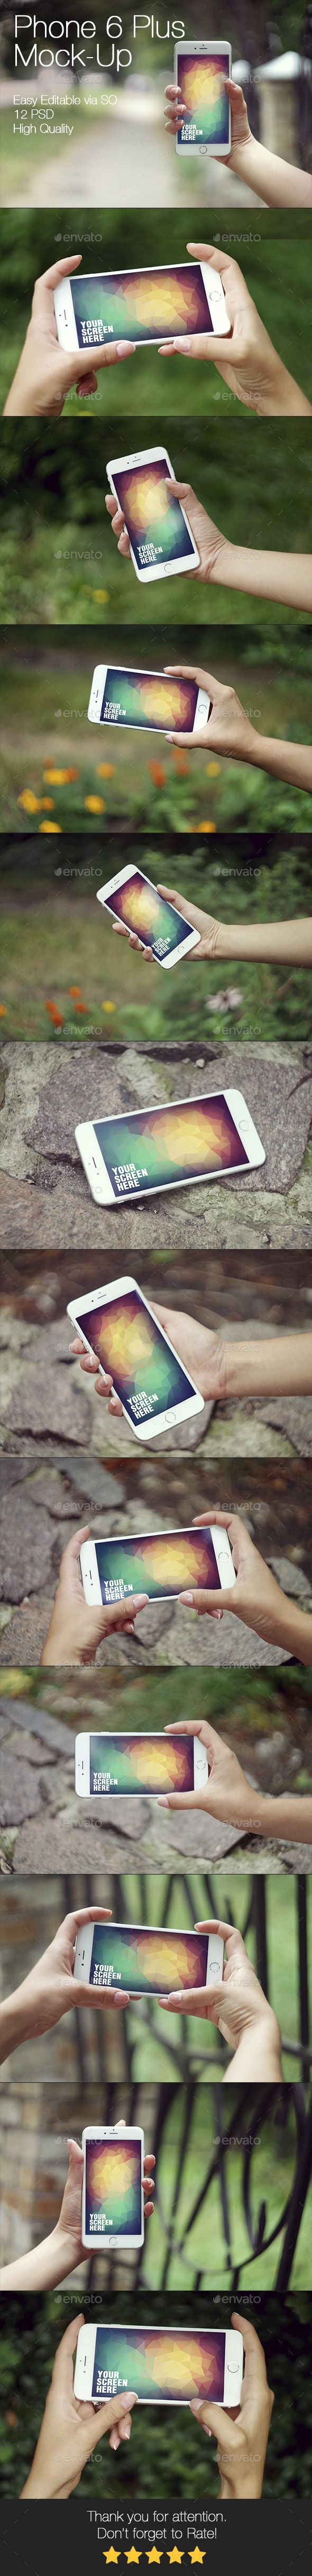 iPhone 6 Plus Mockup Template #mockup #design Download: http://graphicriver.net/item/phone-6-plus-mockup/12616987?ref=ksioks